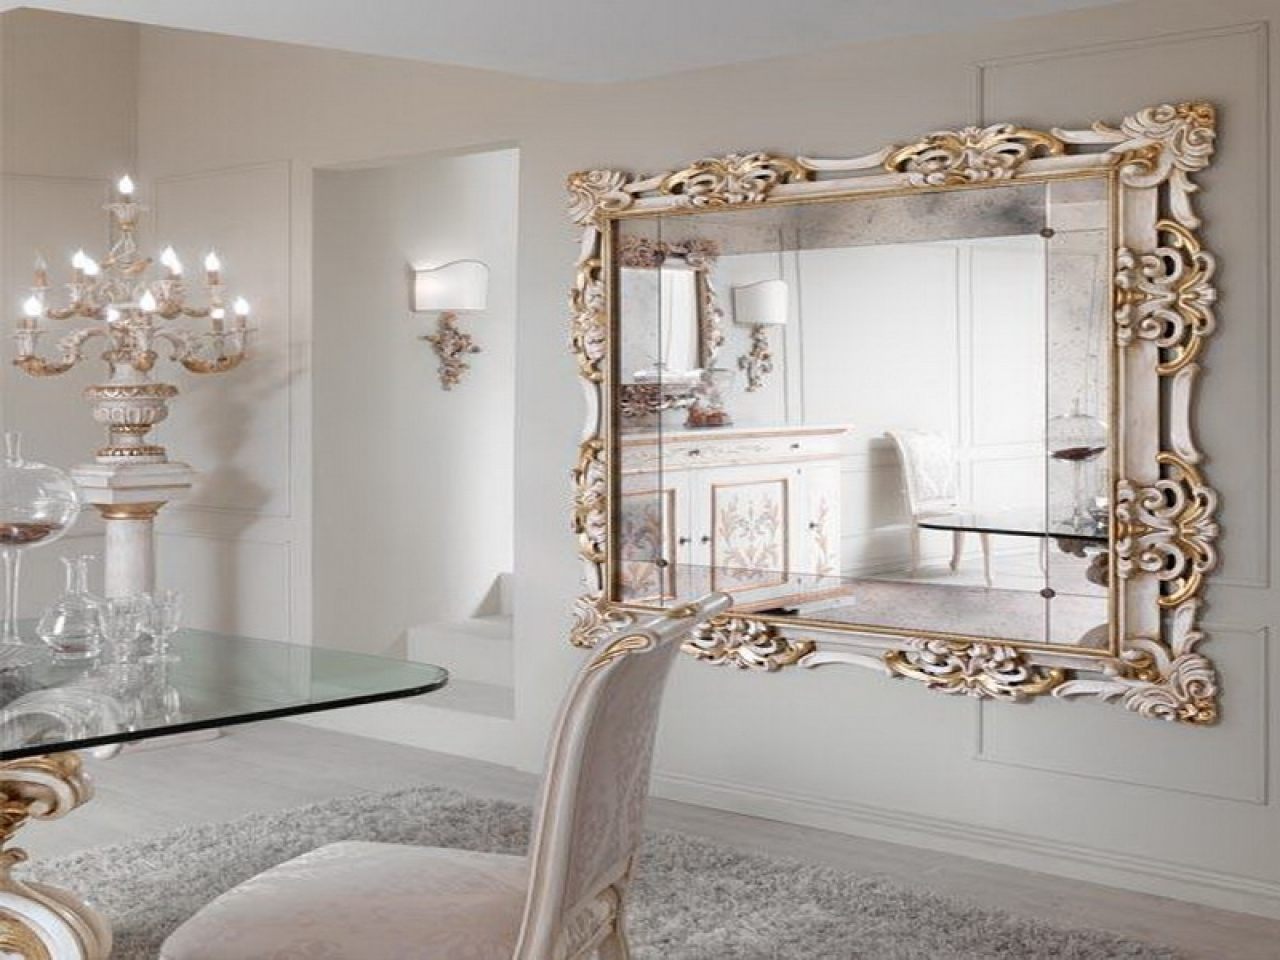 Designer Wall Mirror Beauty N Large Designer Wall Mirrors Large Within Designer Mirrors For Sale (Image 7 of 15)